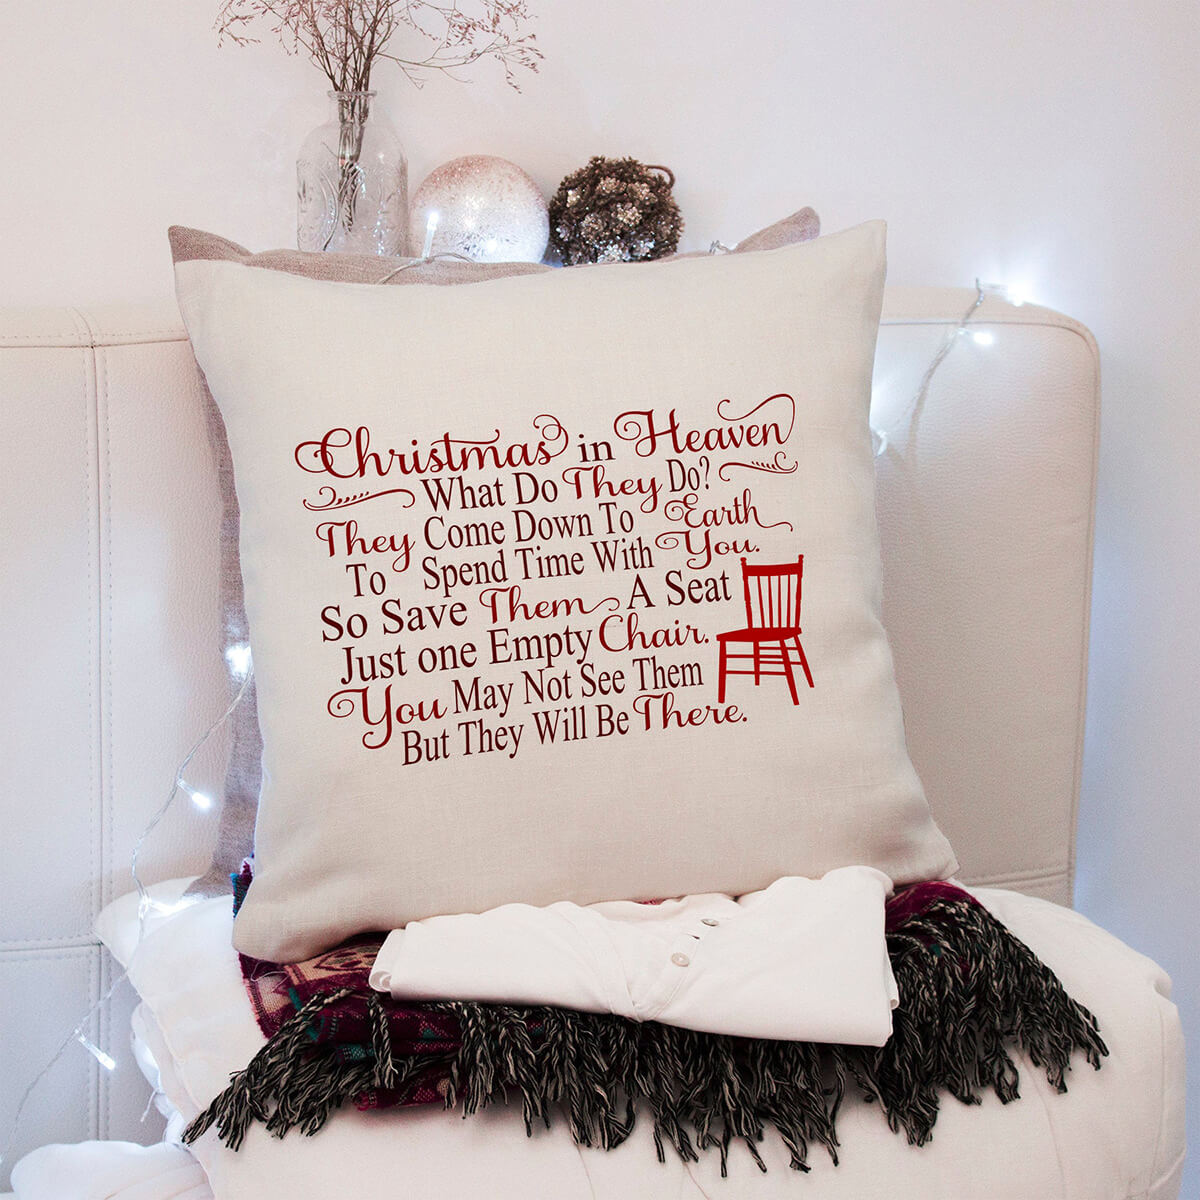 Special Chair for Loved Ones in Heaven Christmas Pillow